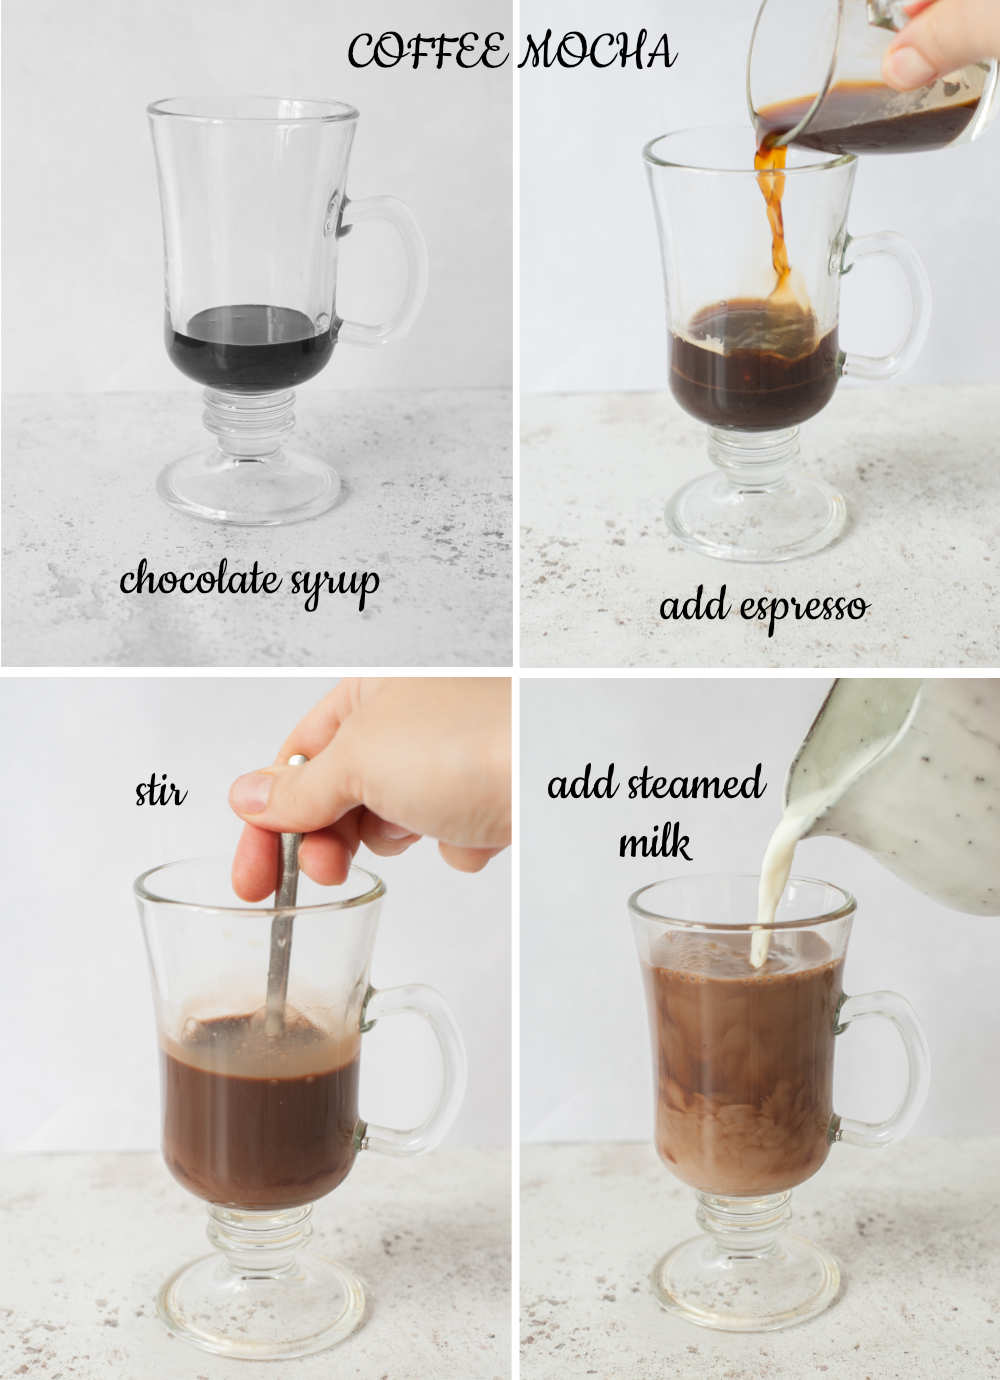 A collage of 4 photos showing how to make coffee mocha.